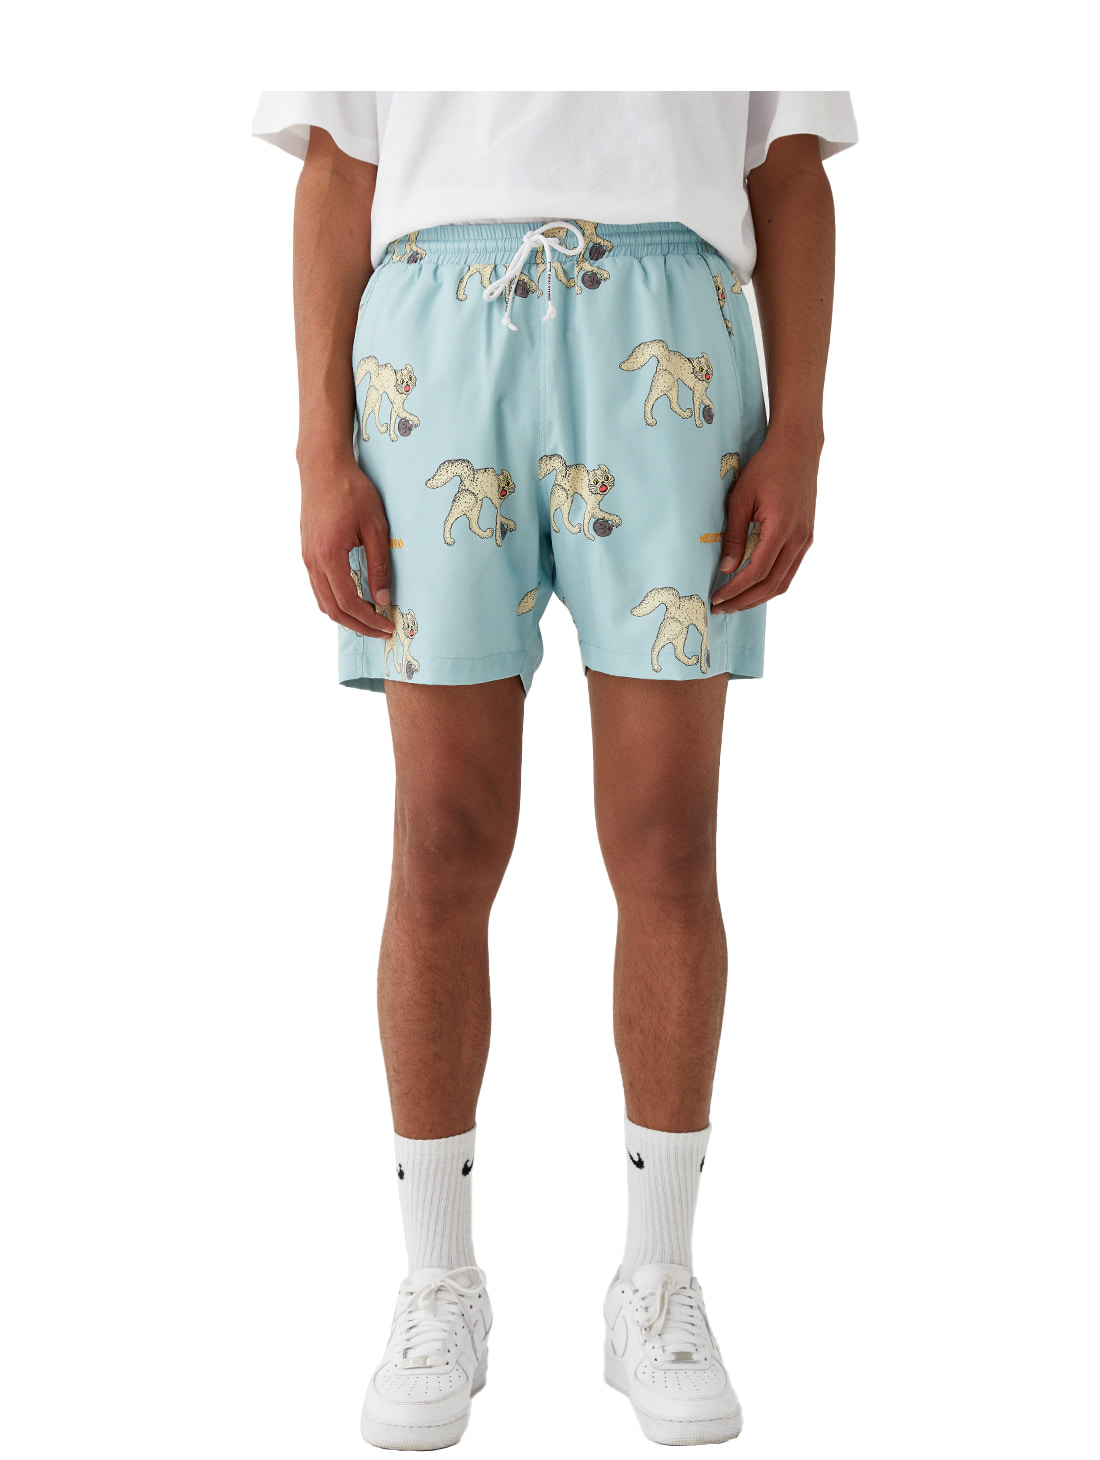 MC ALL OVER PATTERN SHORTS - LIGHT BLUE